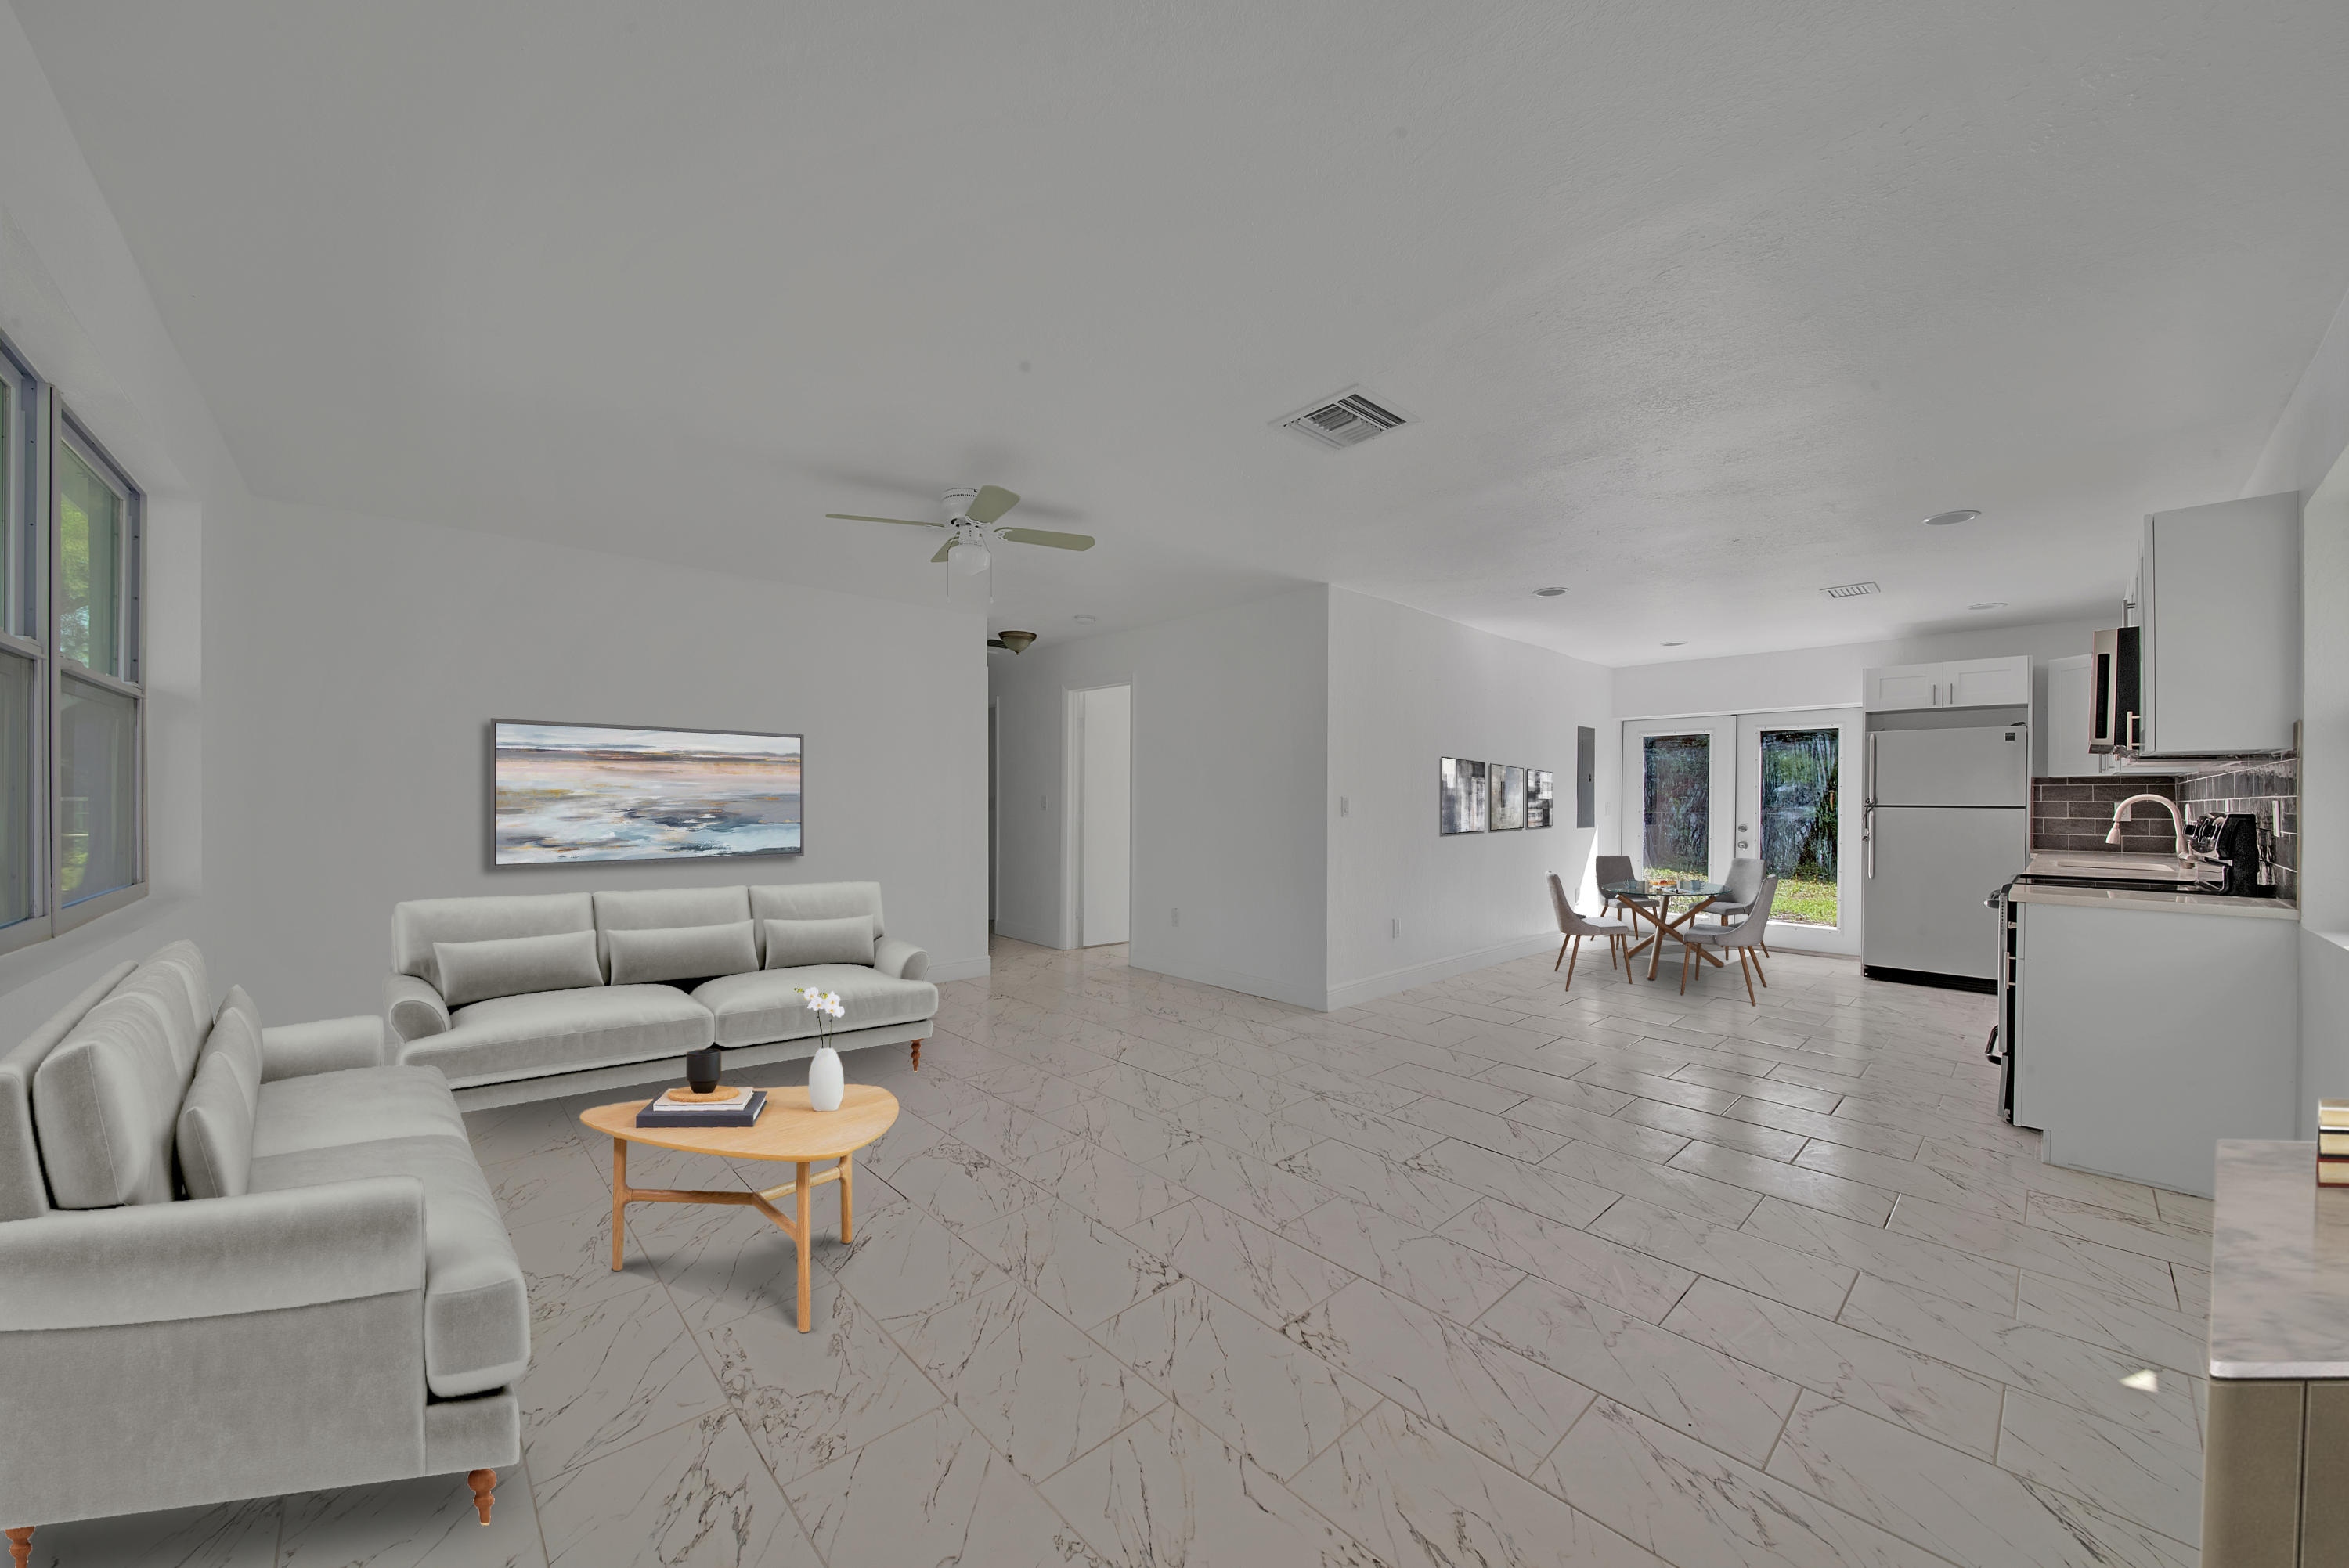 Home for sale in North Palm Beach West Palm Beach Florida